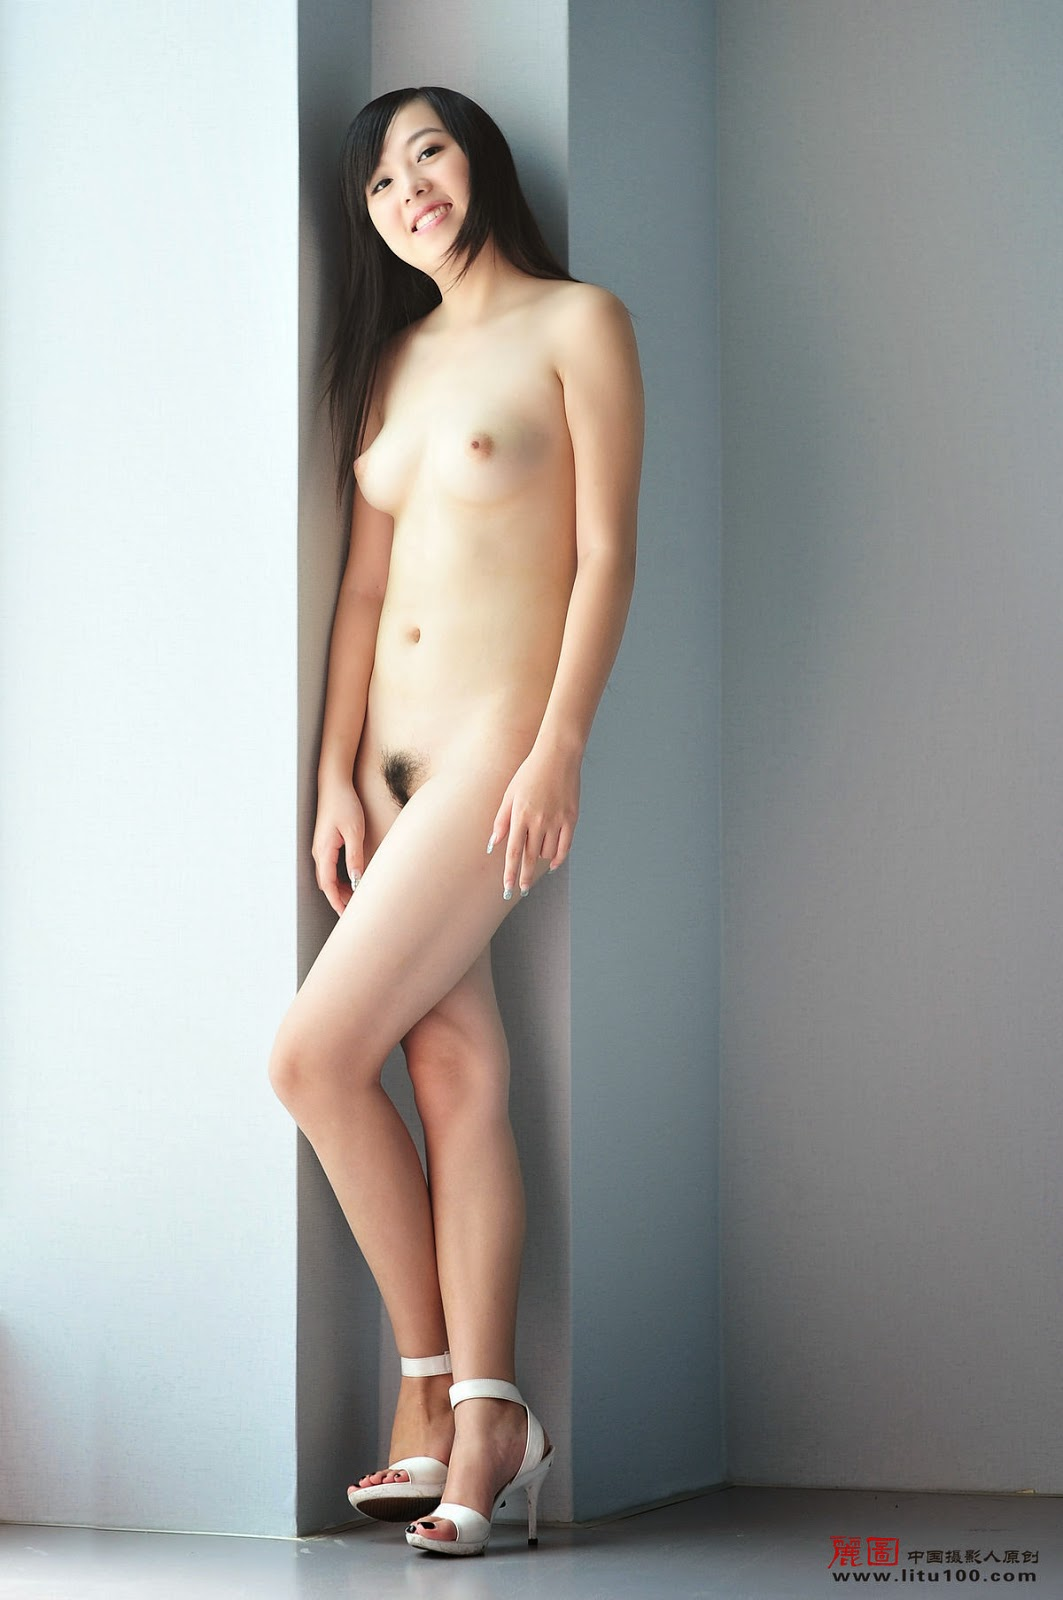 You China naked model she attractively